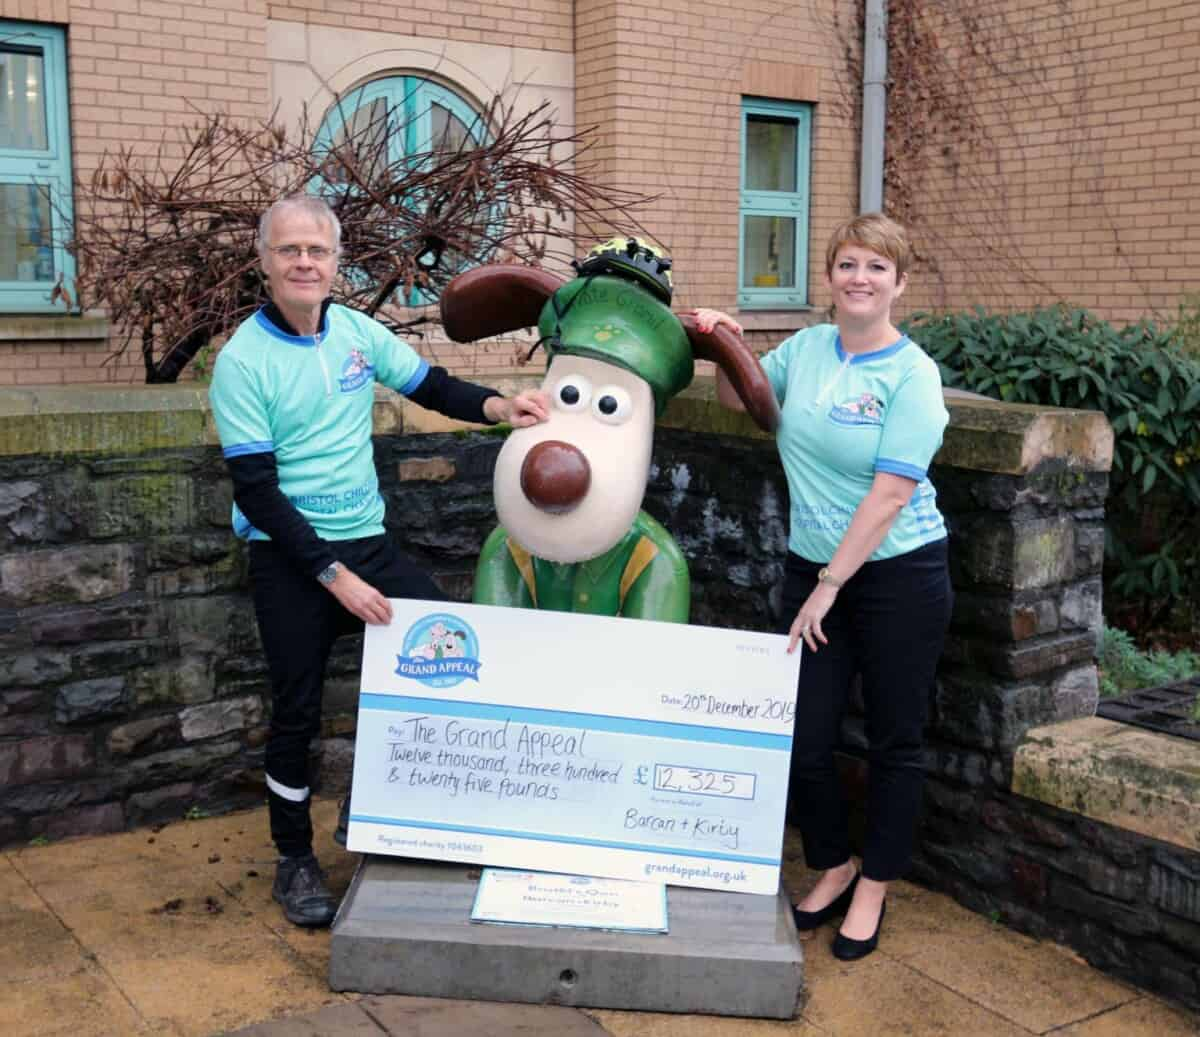 barcan and kirby employees near private gromit sculpture